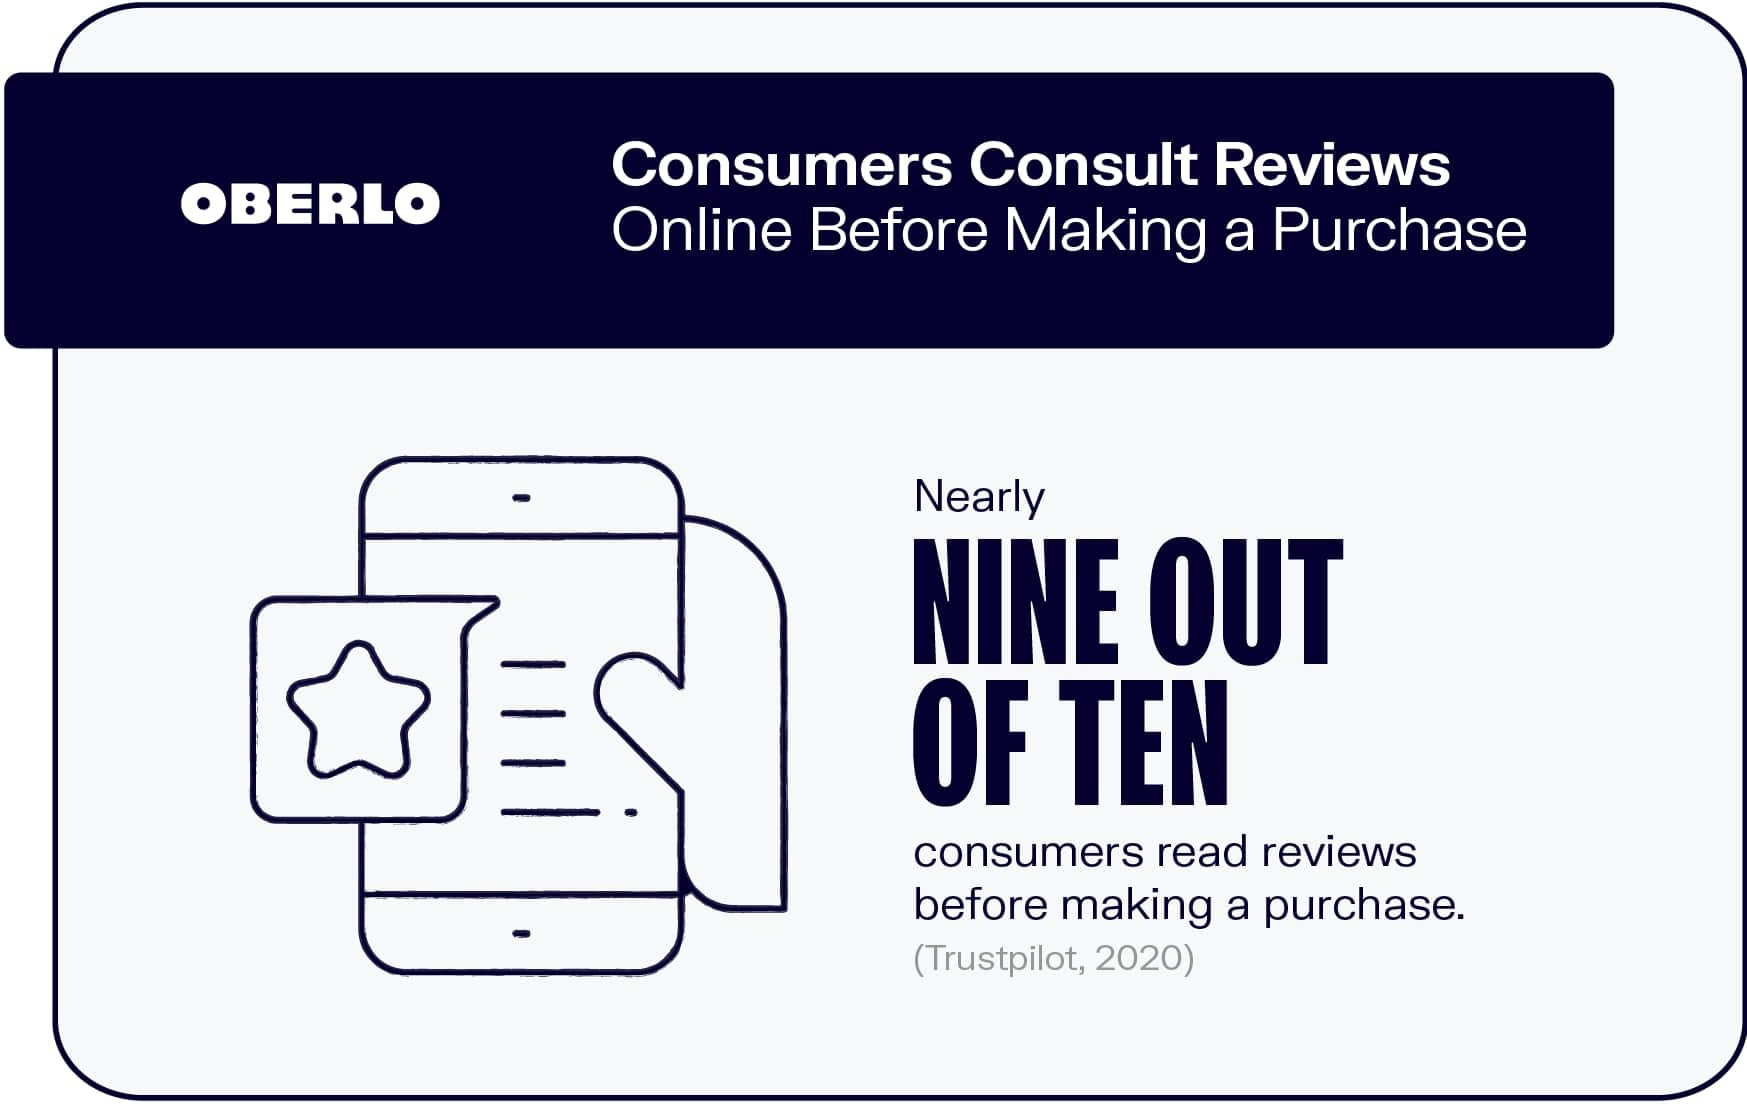 Consumers Consult Reviews Online Before Making a Purchase